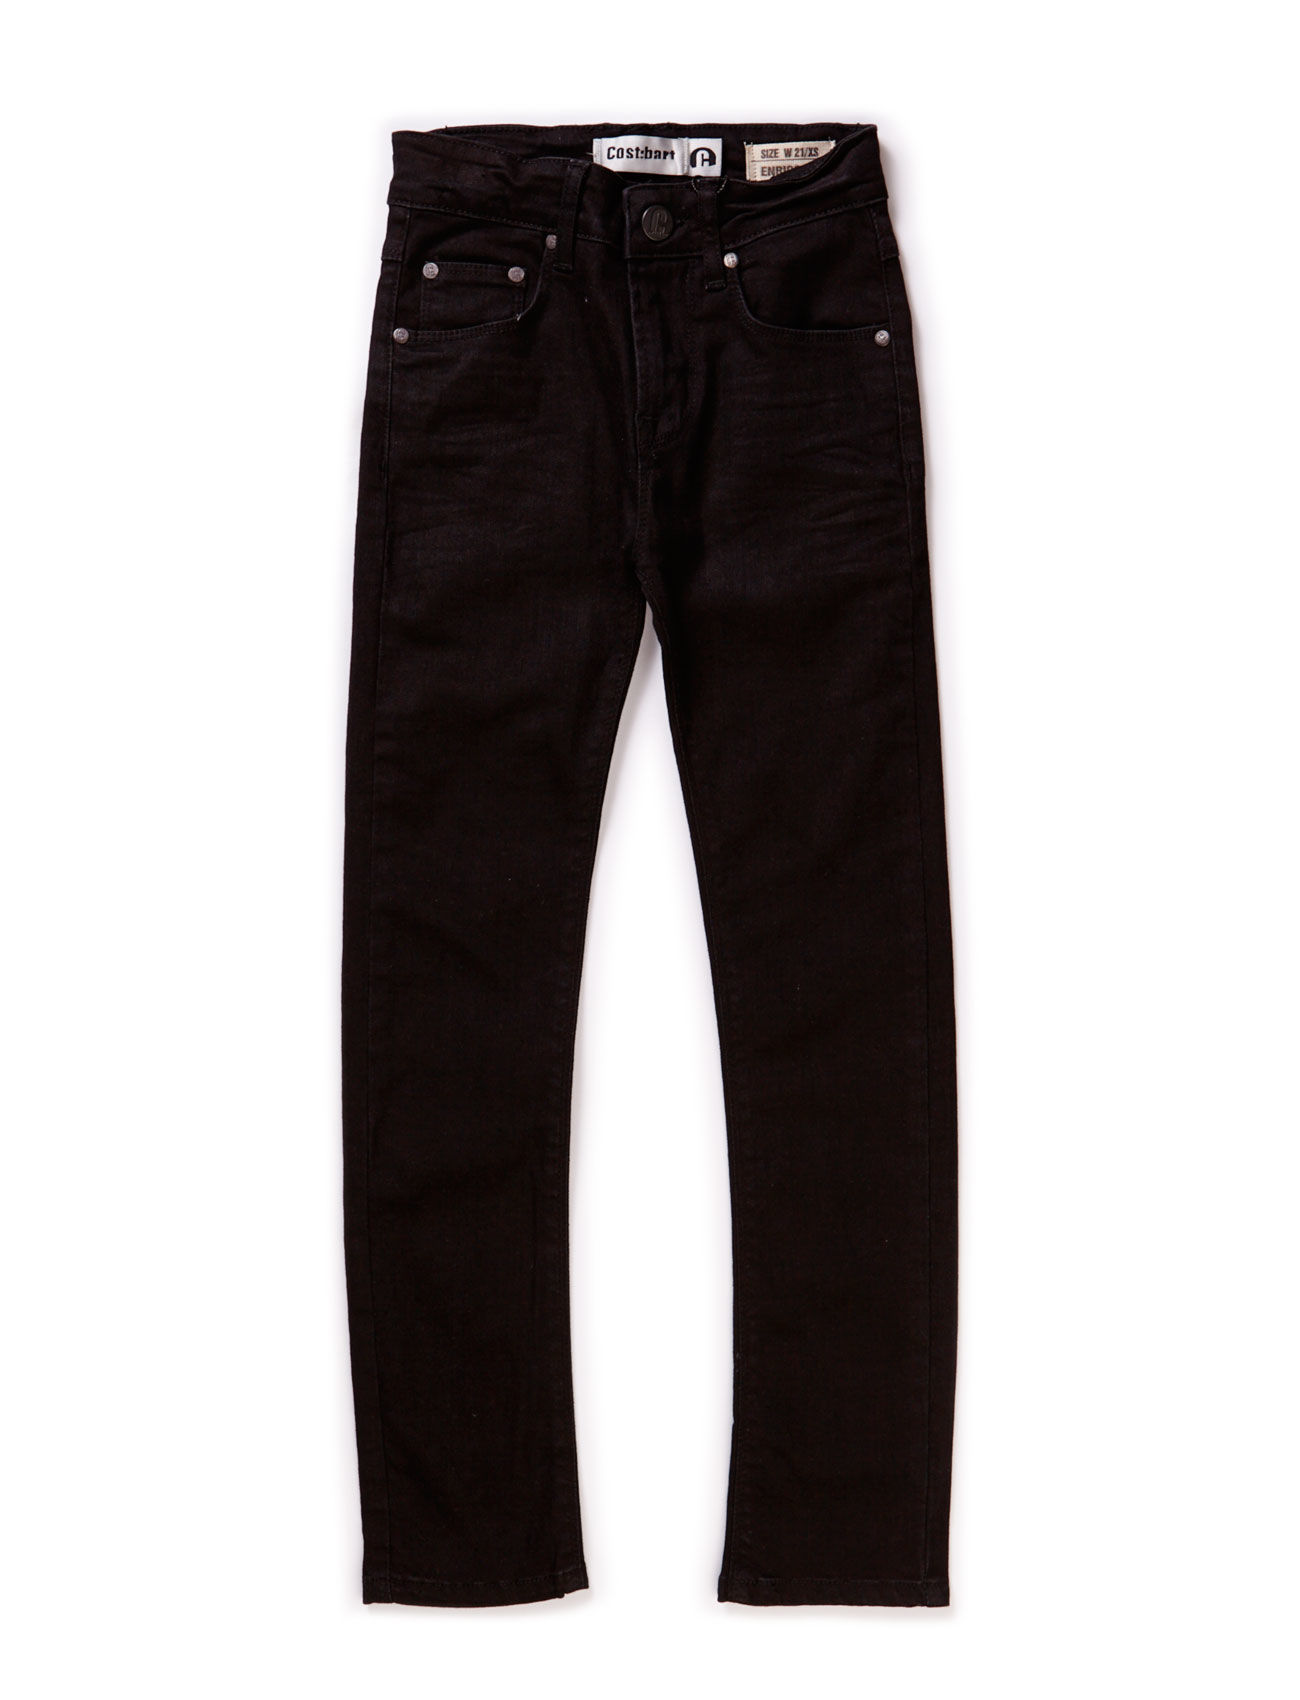 Enrico Jeans CostBart Jeans